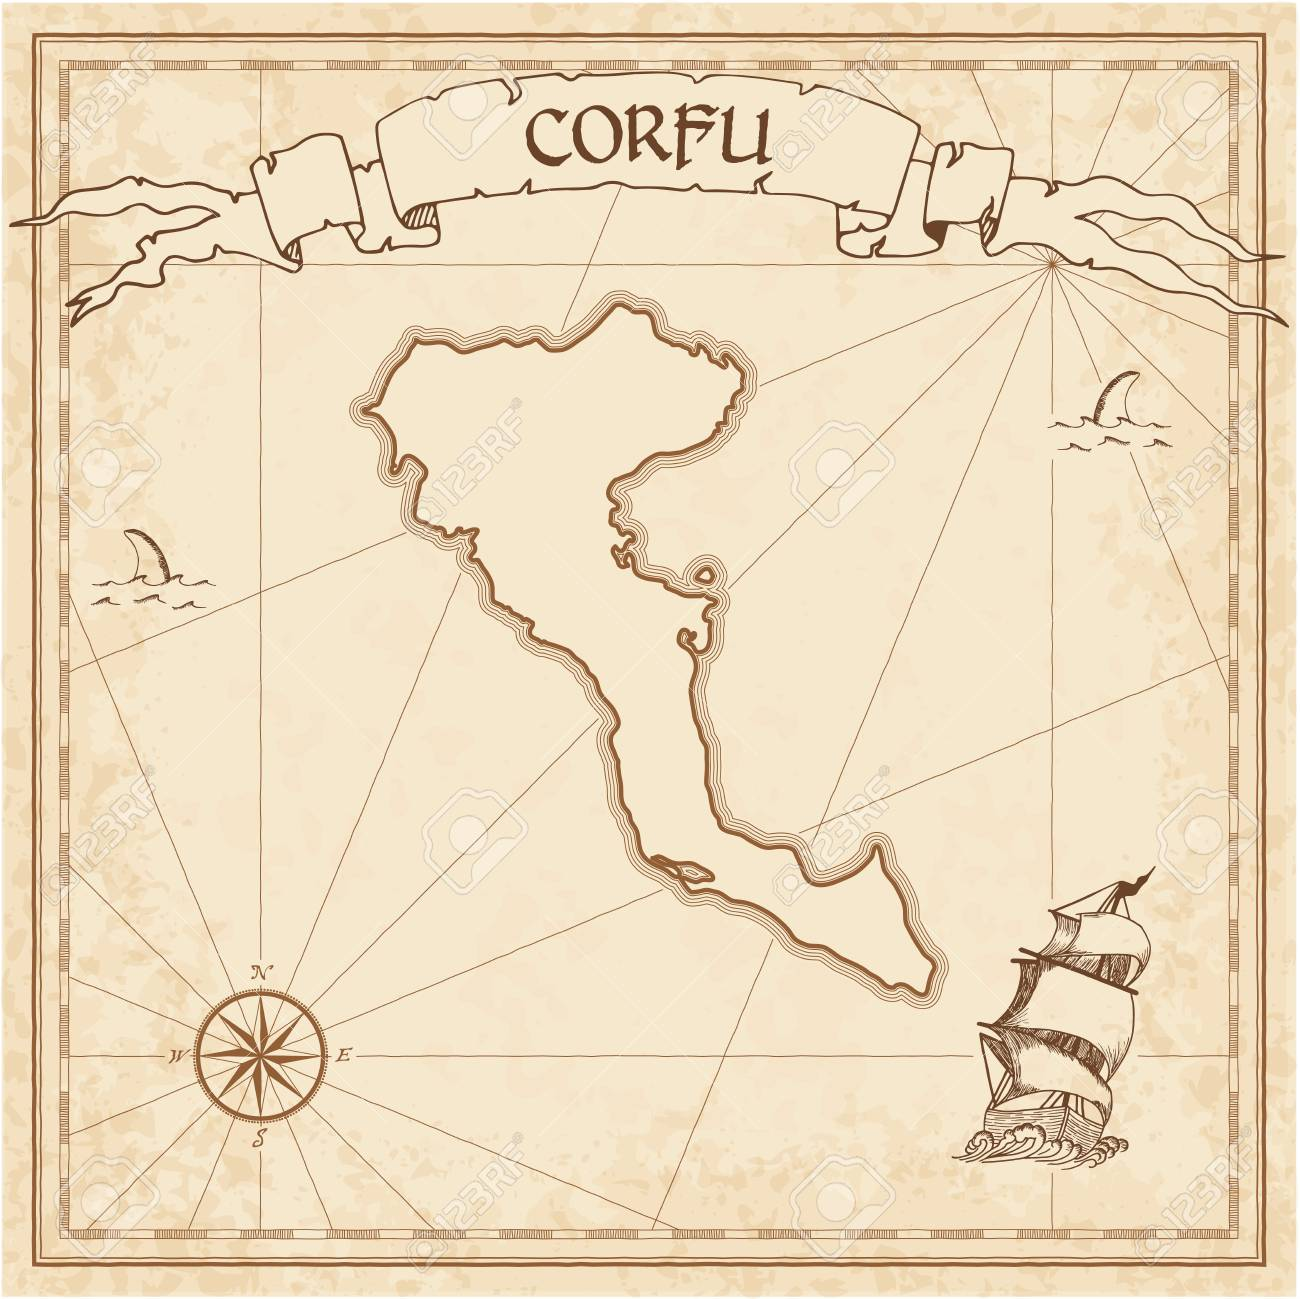 Corfu Old Treasure Map Sepia Engraved Template Of Pirate Island